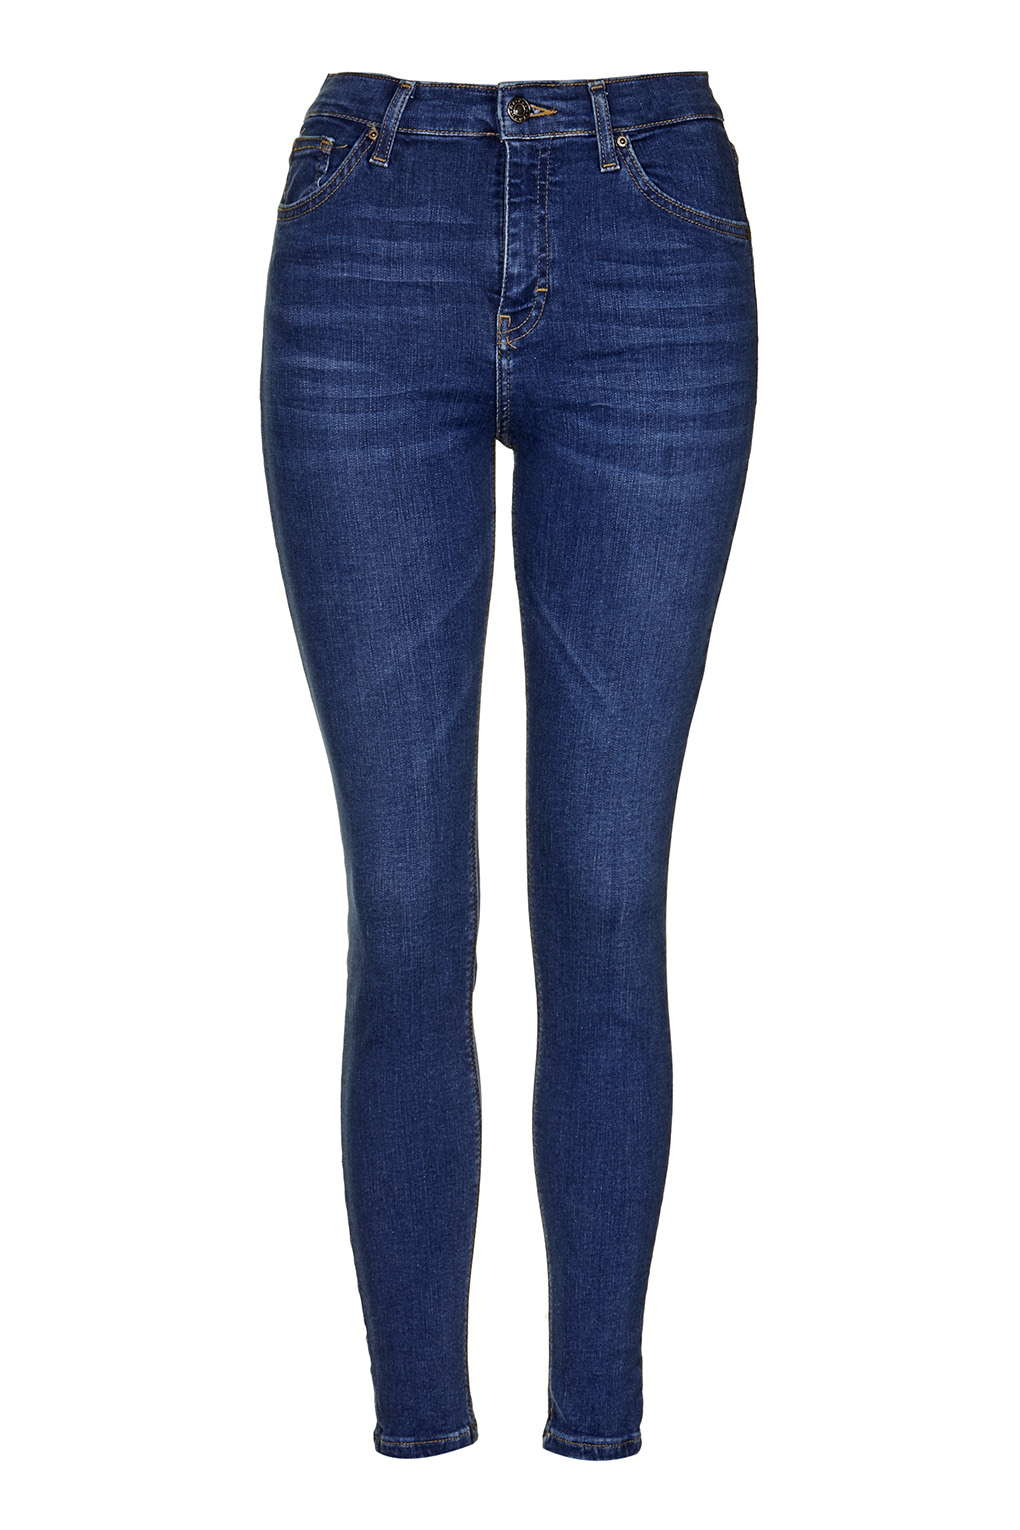 Topshop moto rich indigo jamie jeans in blue lyst for Womens denim shirts topshop